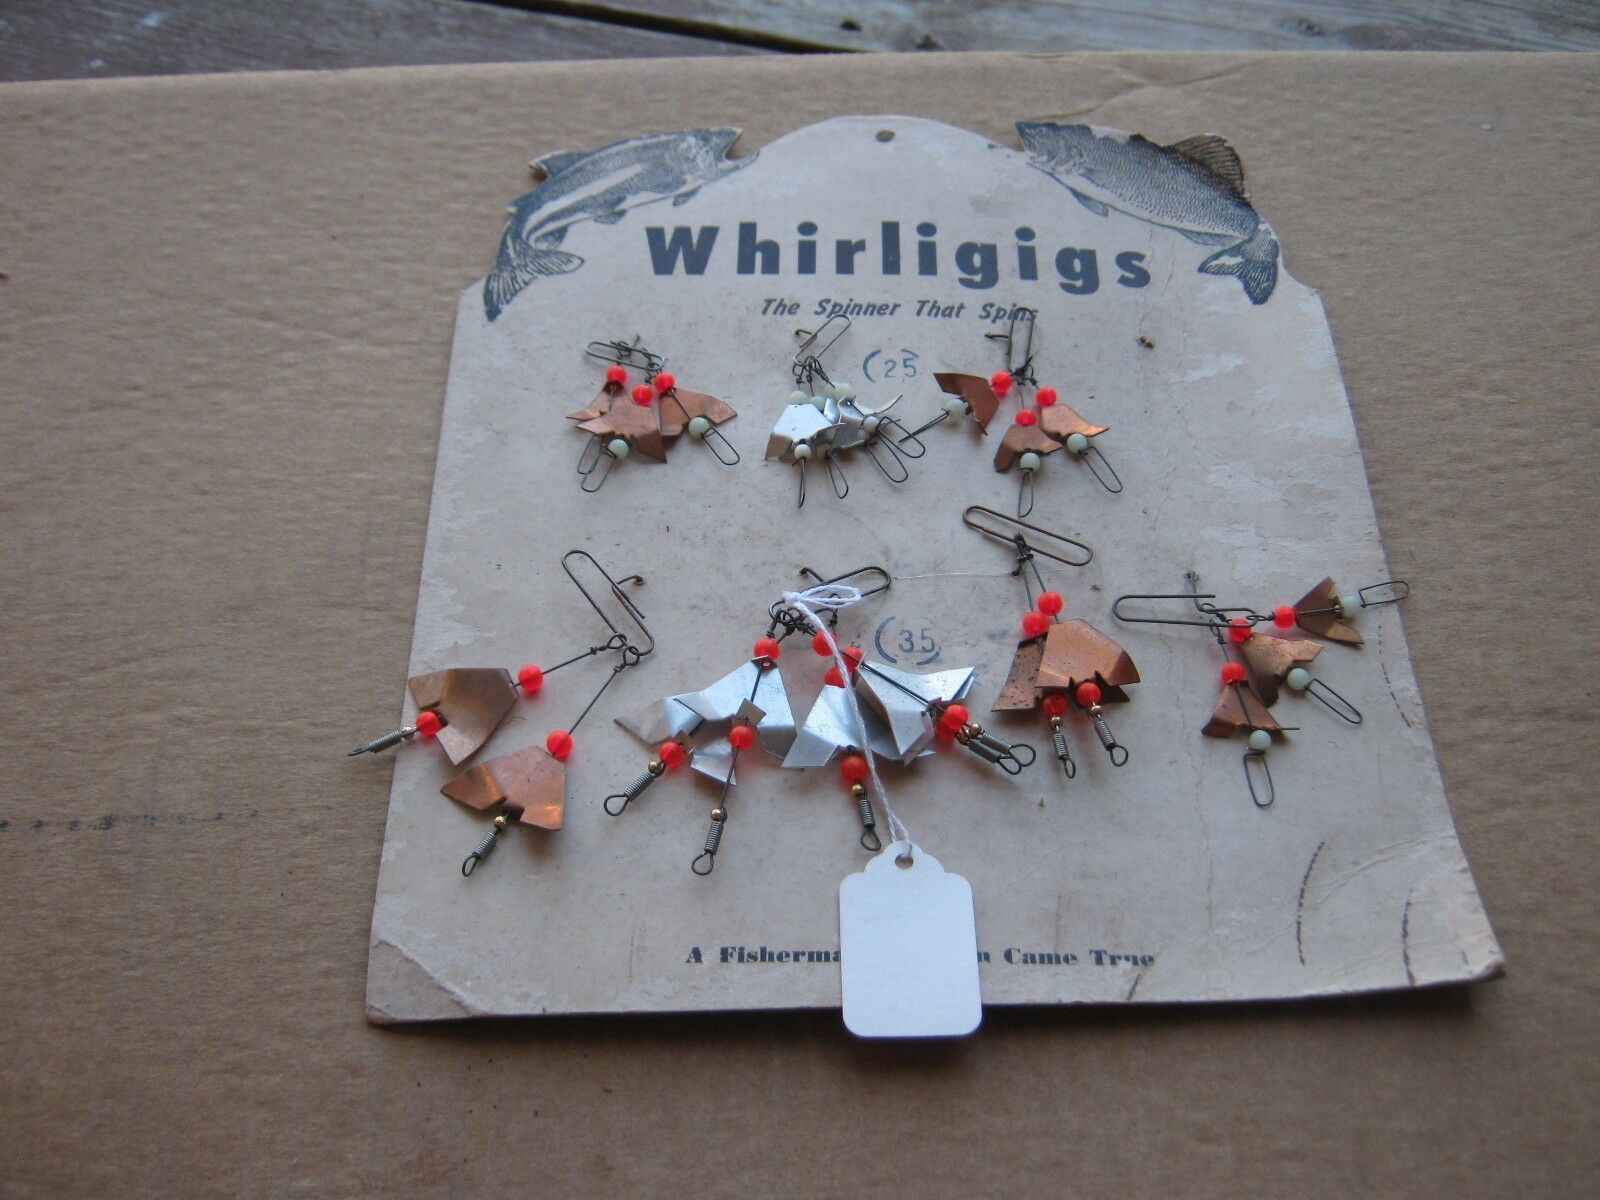 Vintage Whirligigs The Spiiner That Spins Fisherman's Fishing Nautical Decor   looking for sales agent